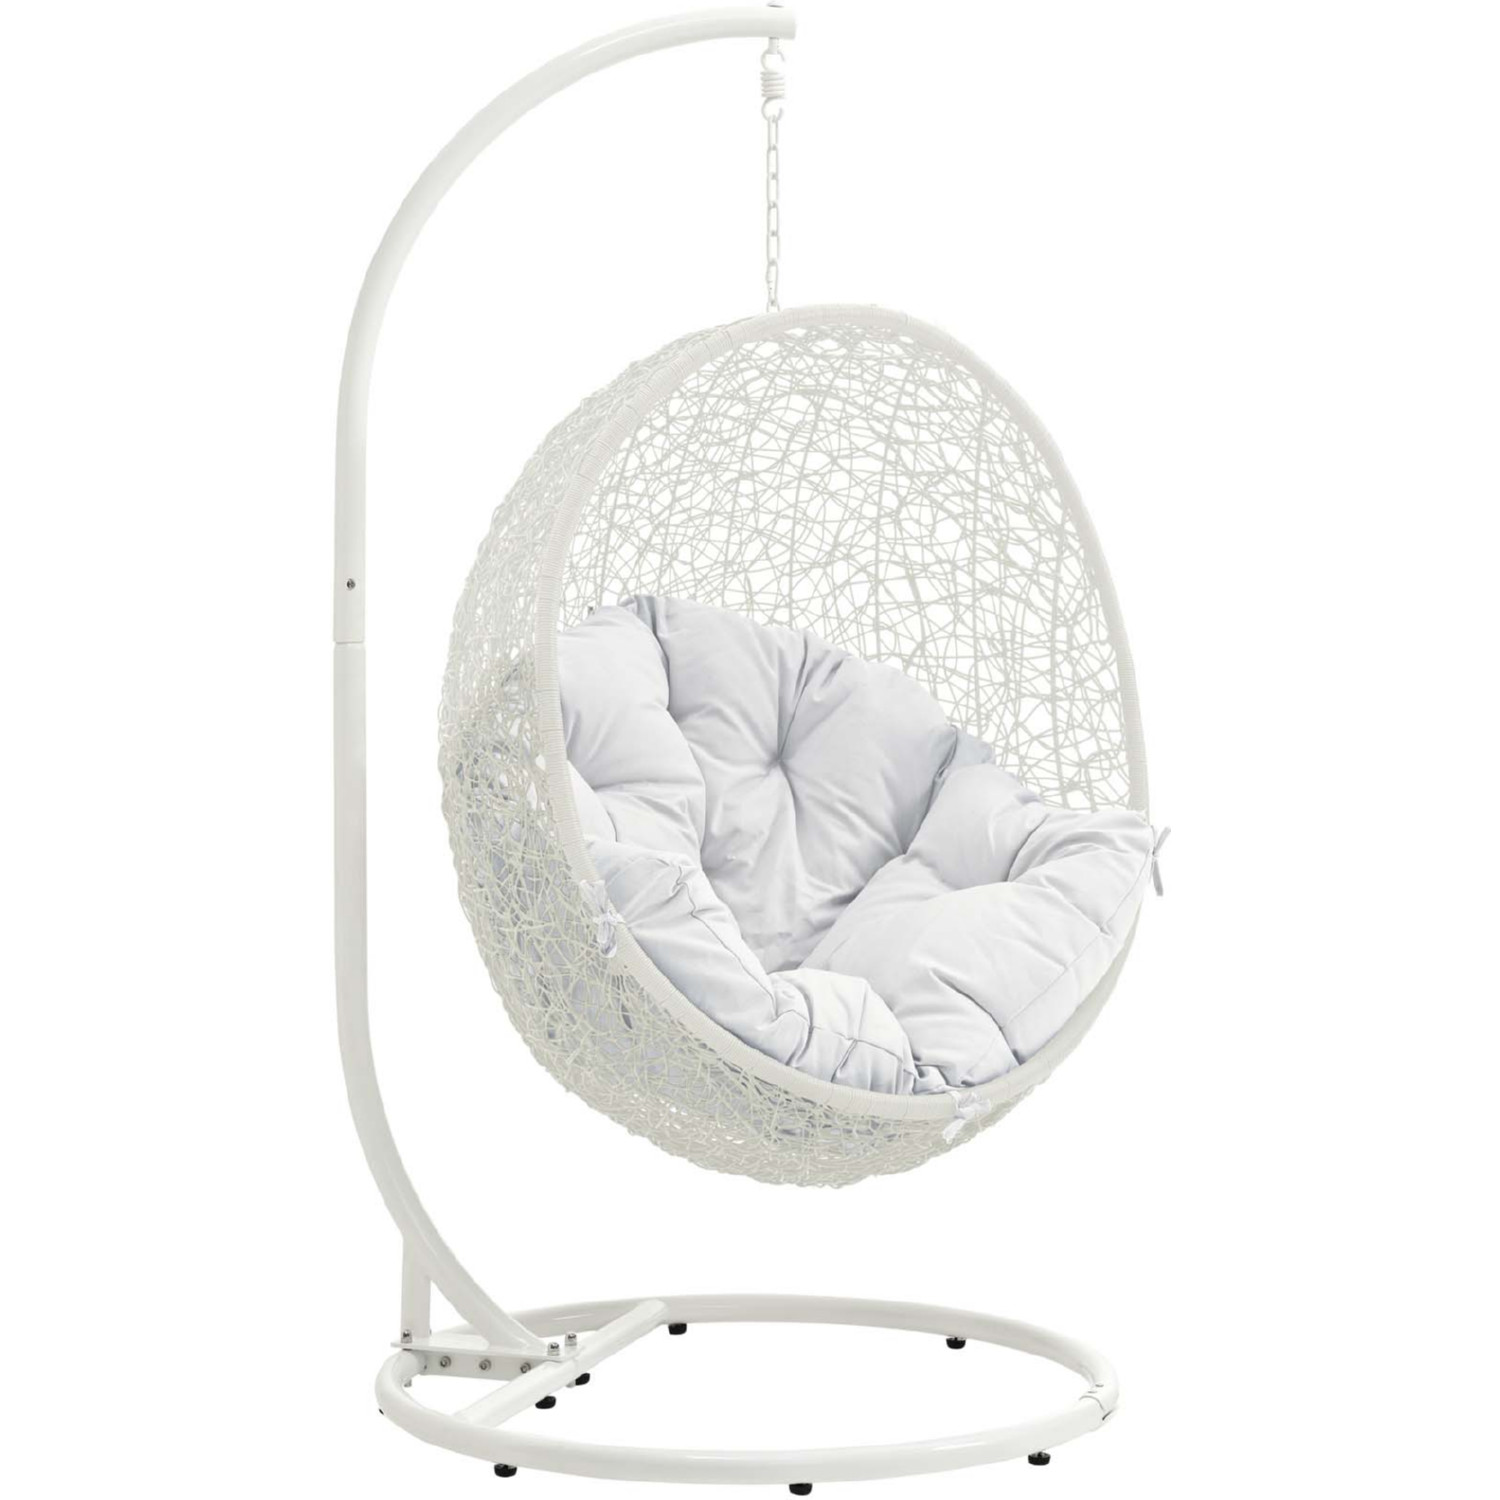 Swing Chair Stand Hide Outdoor Patio Swing Chair W Stand In White Poly Rattan W White Cushion By Modway